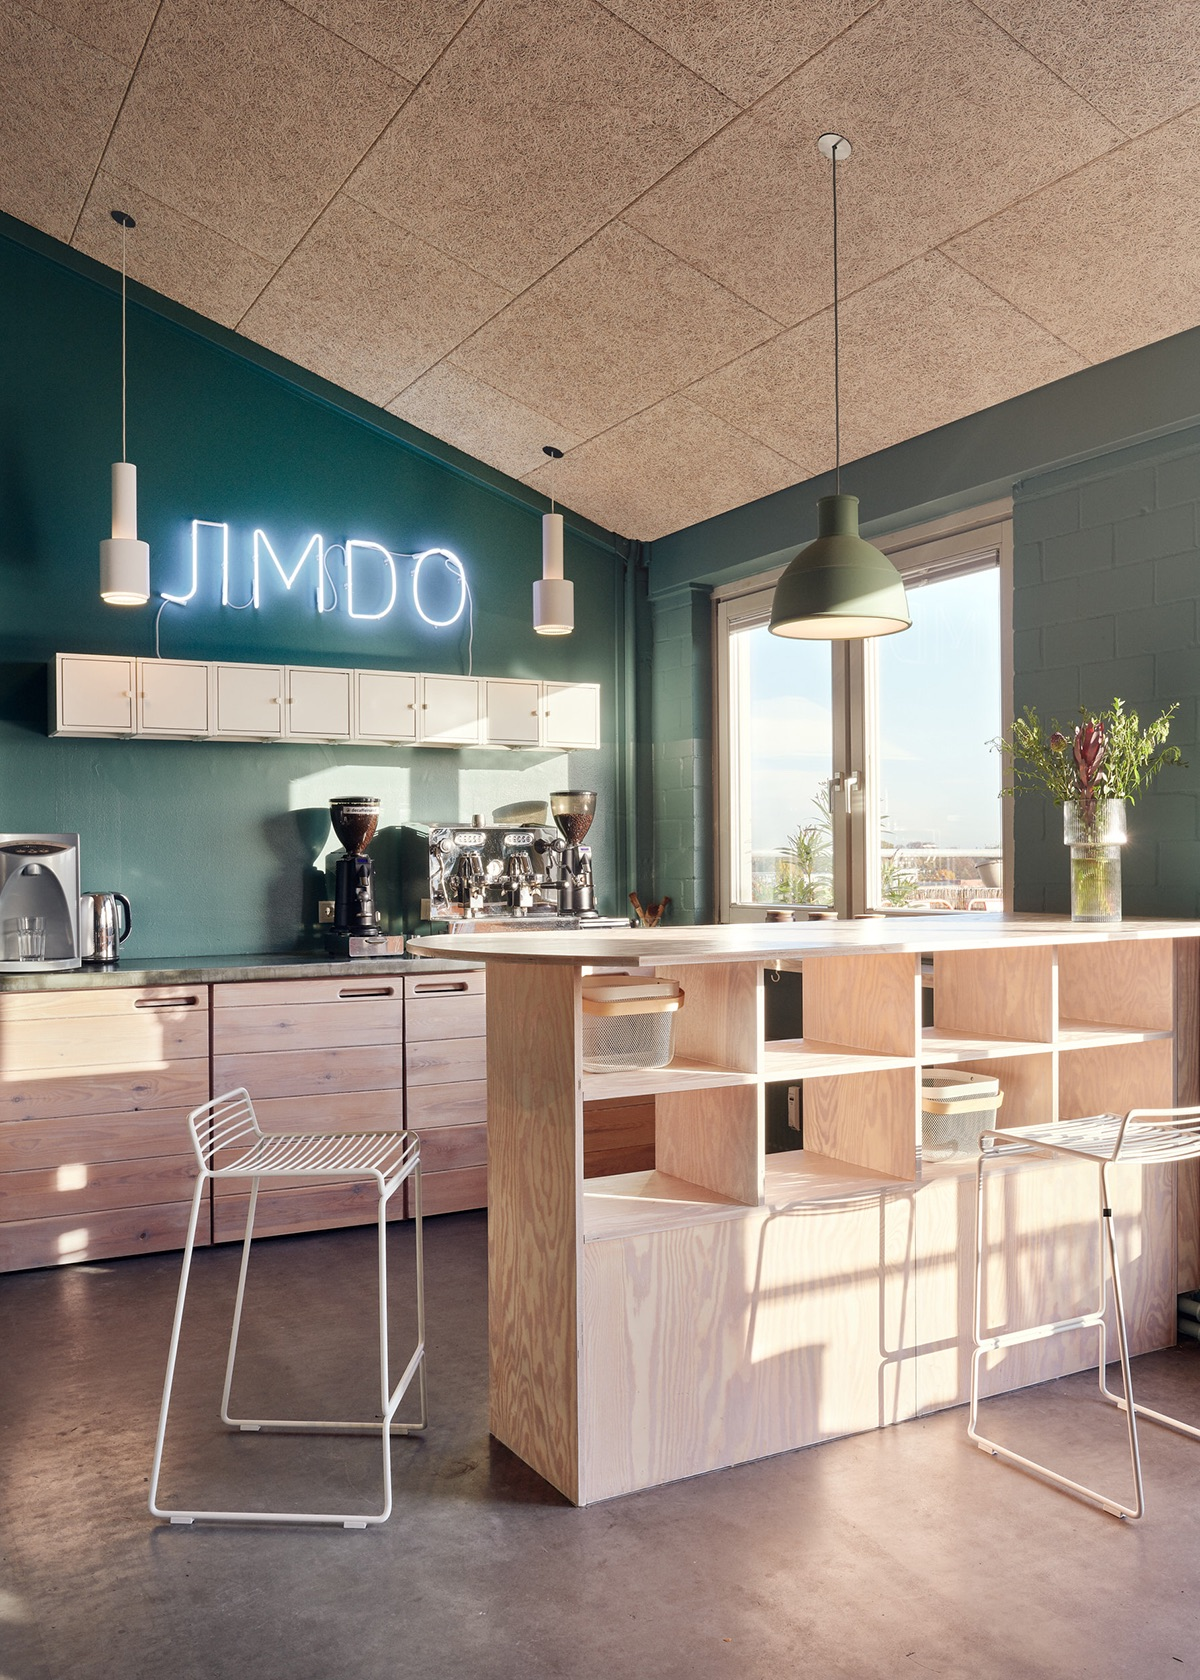 jimdo-office-hamburg-1